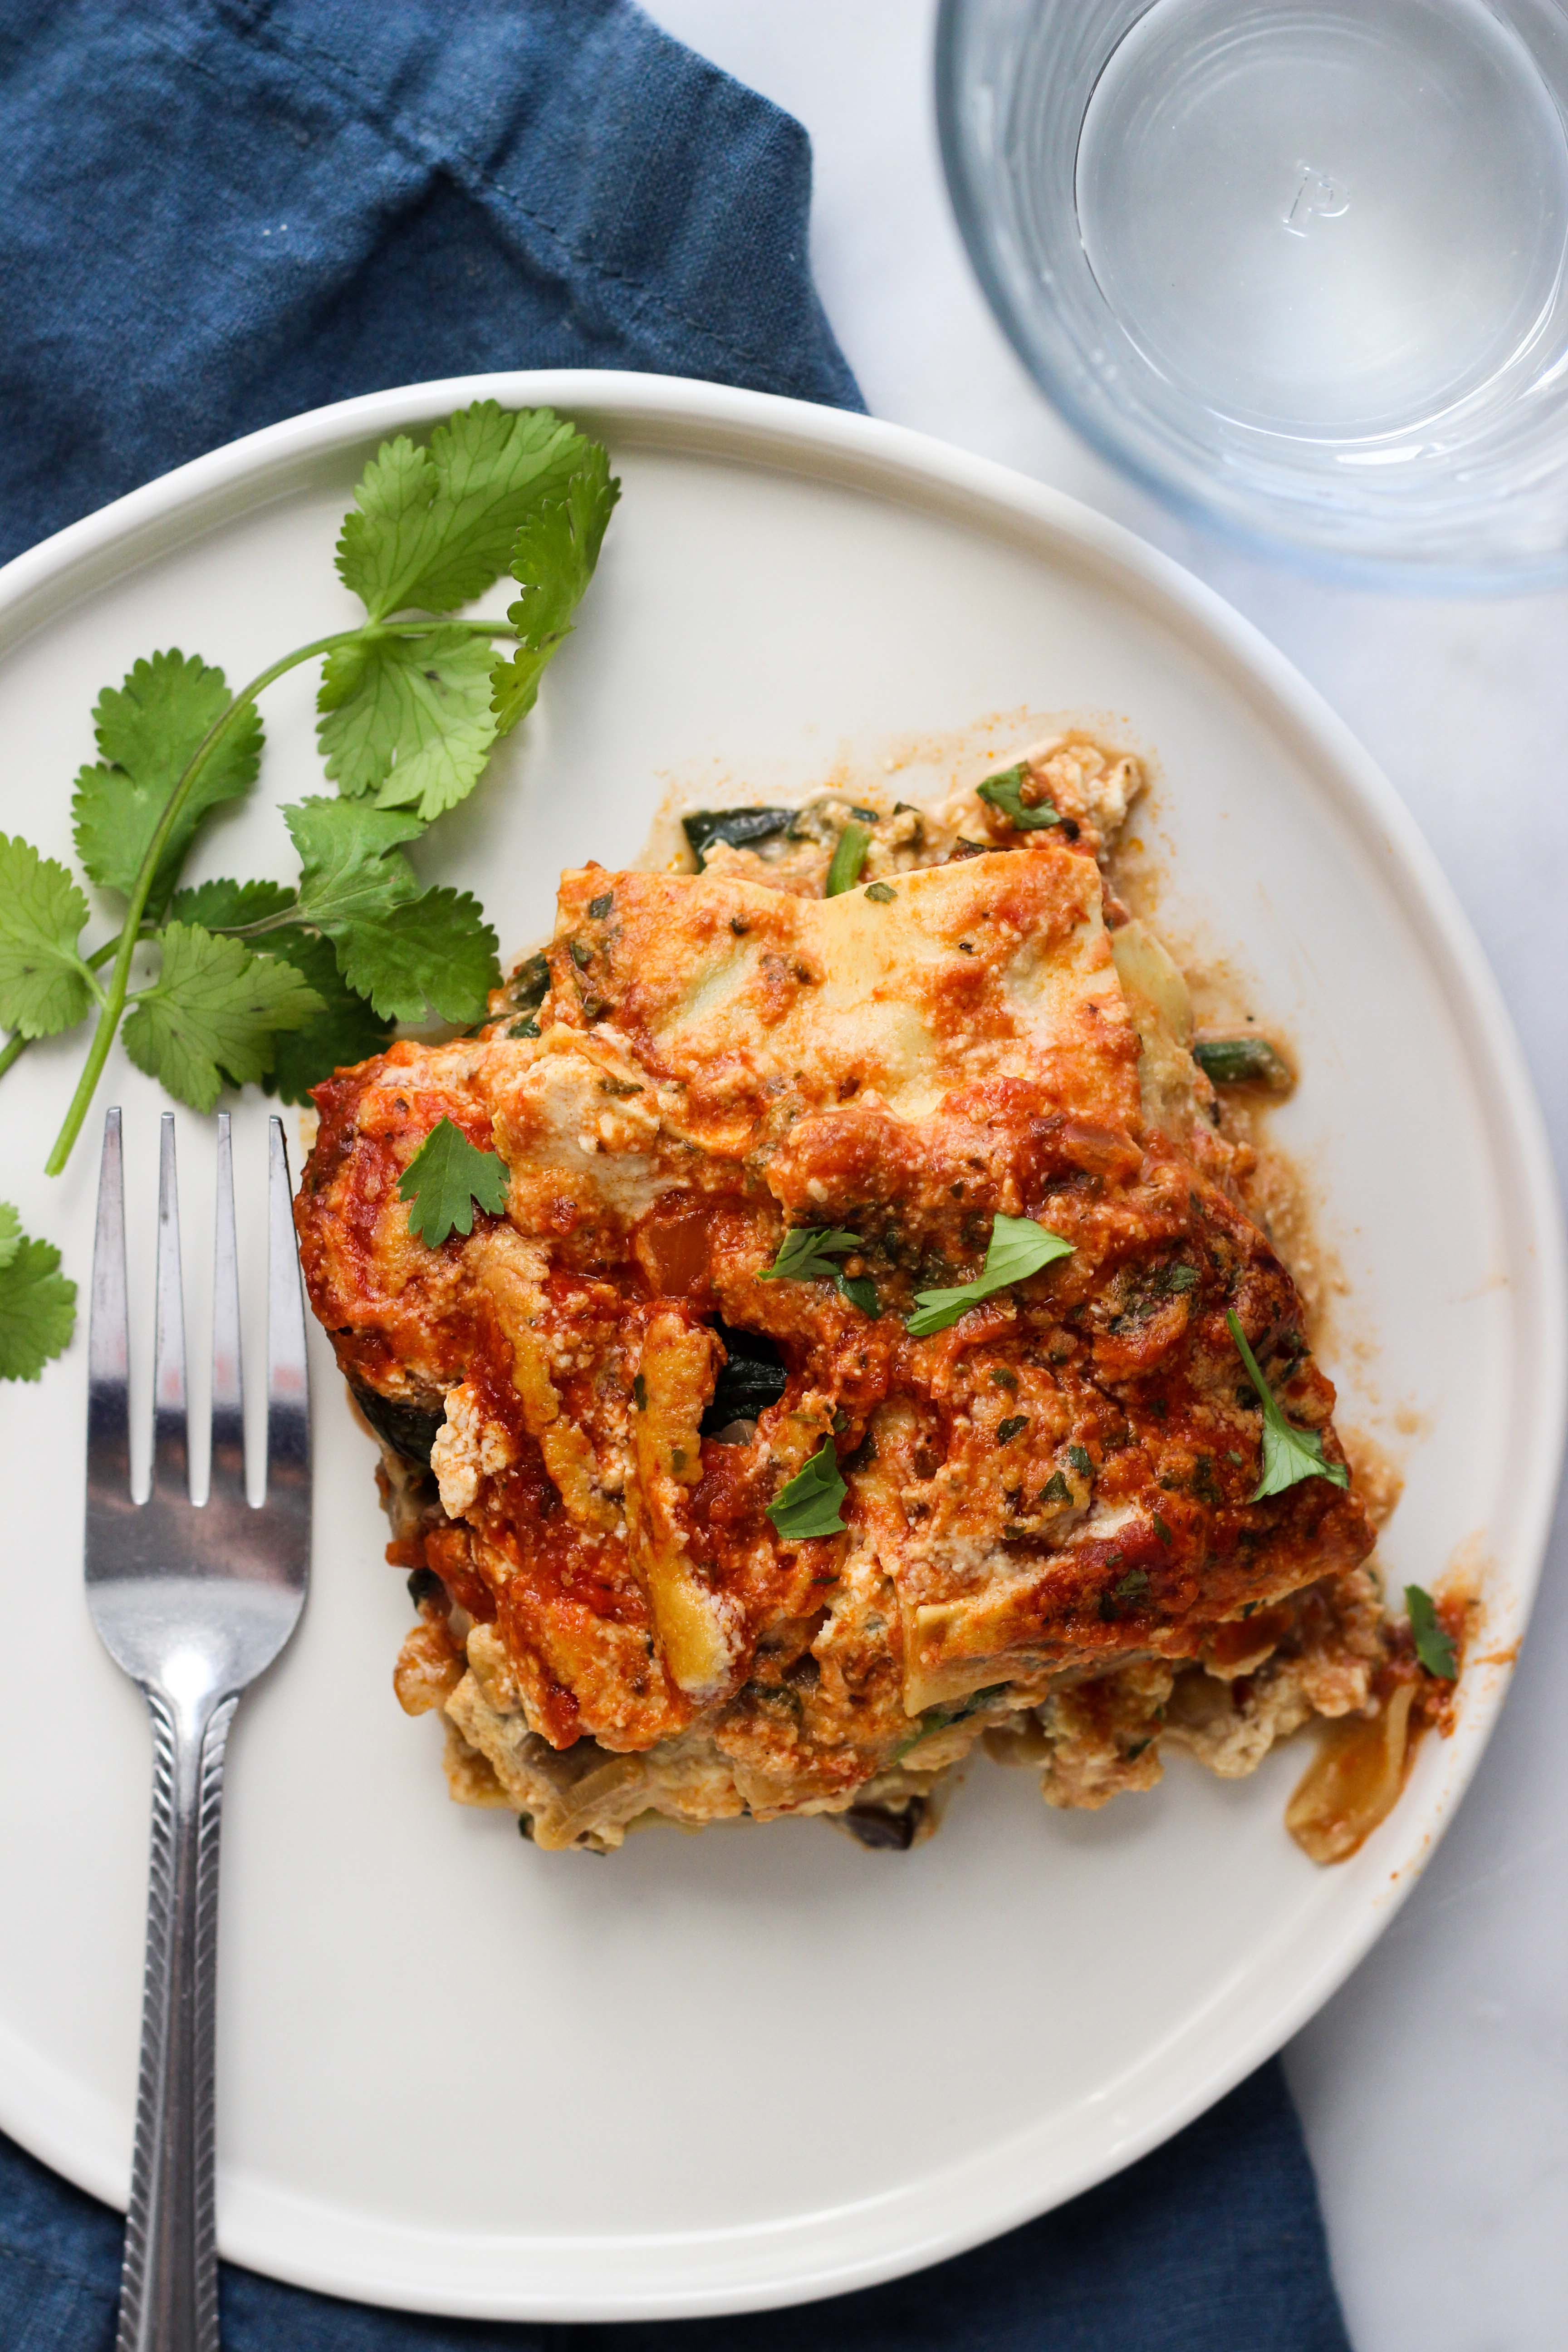 Vegan Spinach and Mushroom Lasagna on white plate with fork